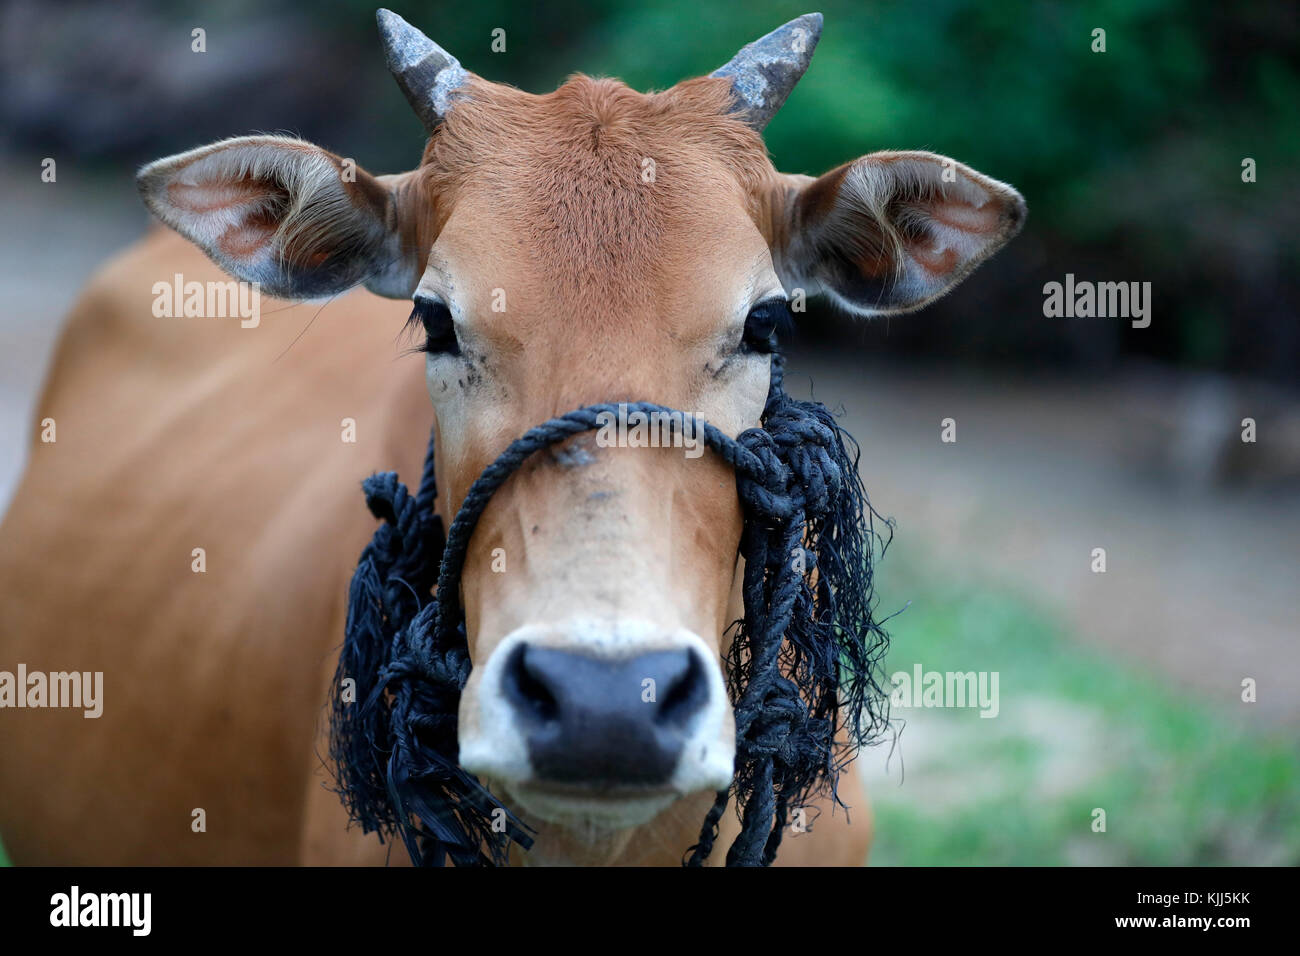 Close-up of a cow. Kon Tum. Vietnam. - Stock Image